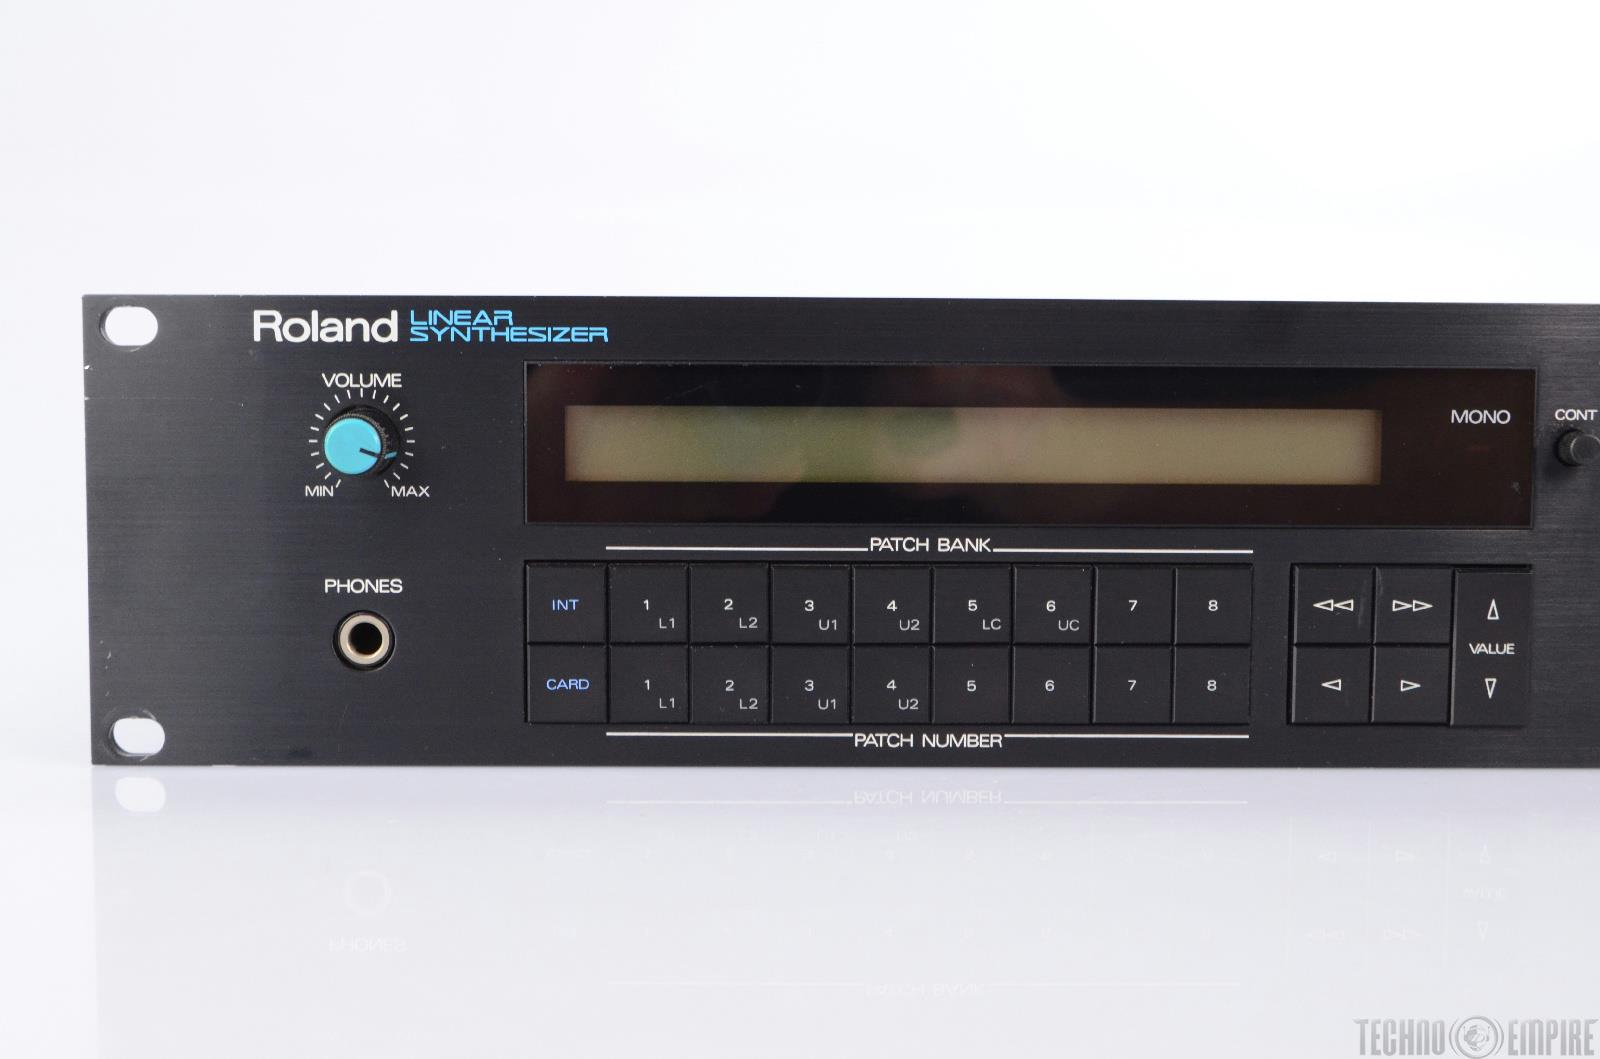 roland d 550 linear synthesizer midi sound module for repair or parts 22434 ebay. Black Bedroom Furniture Sets. Home Design Ideas